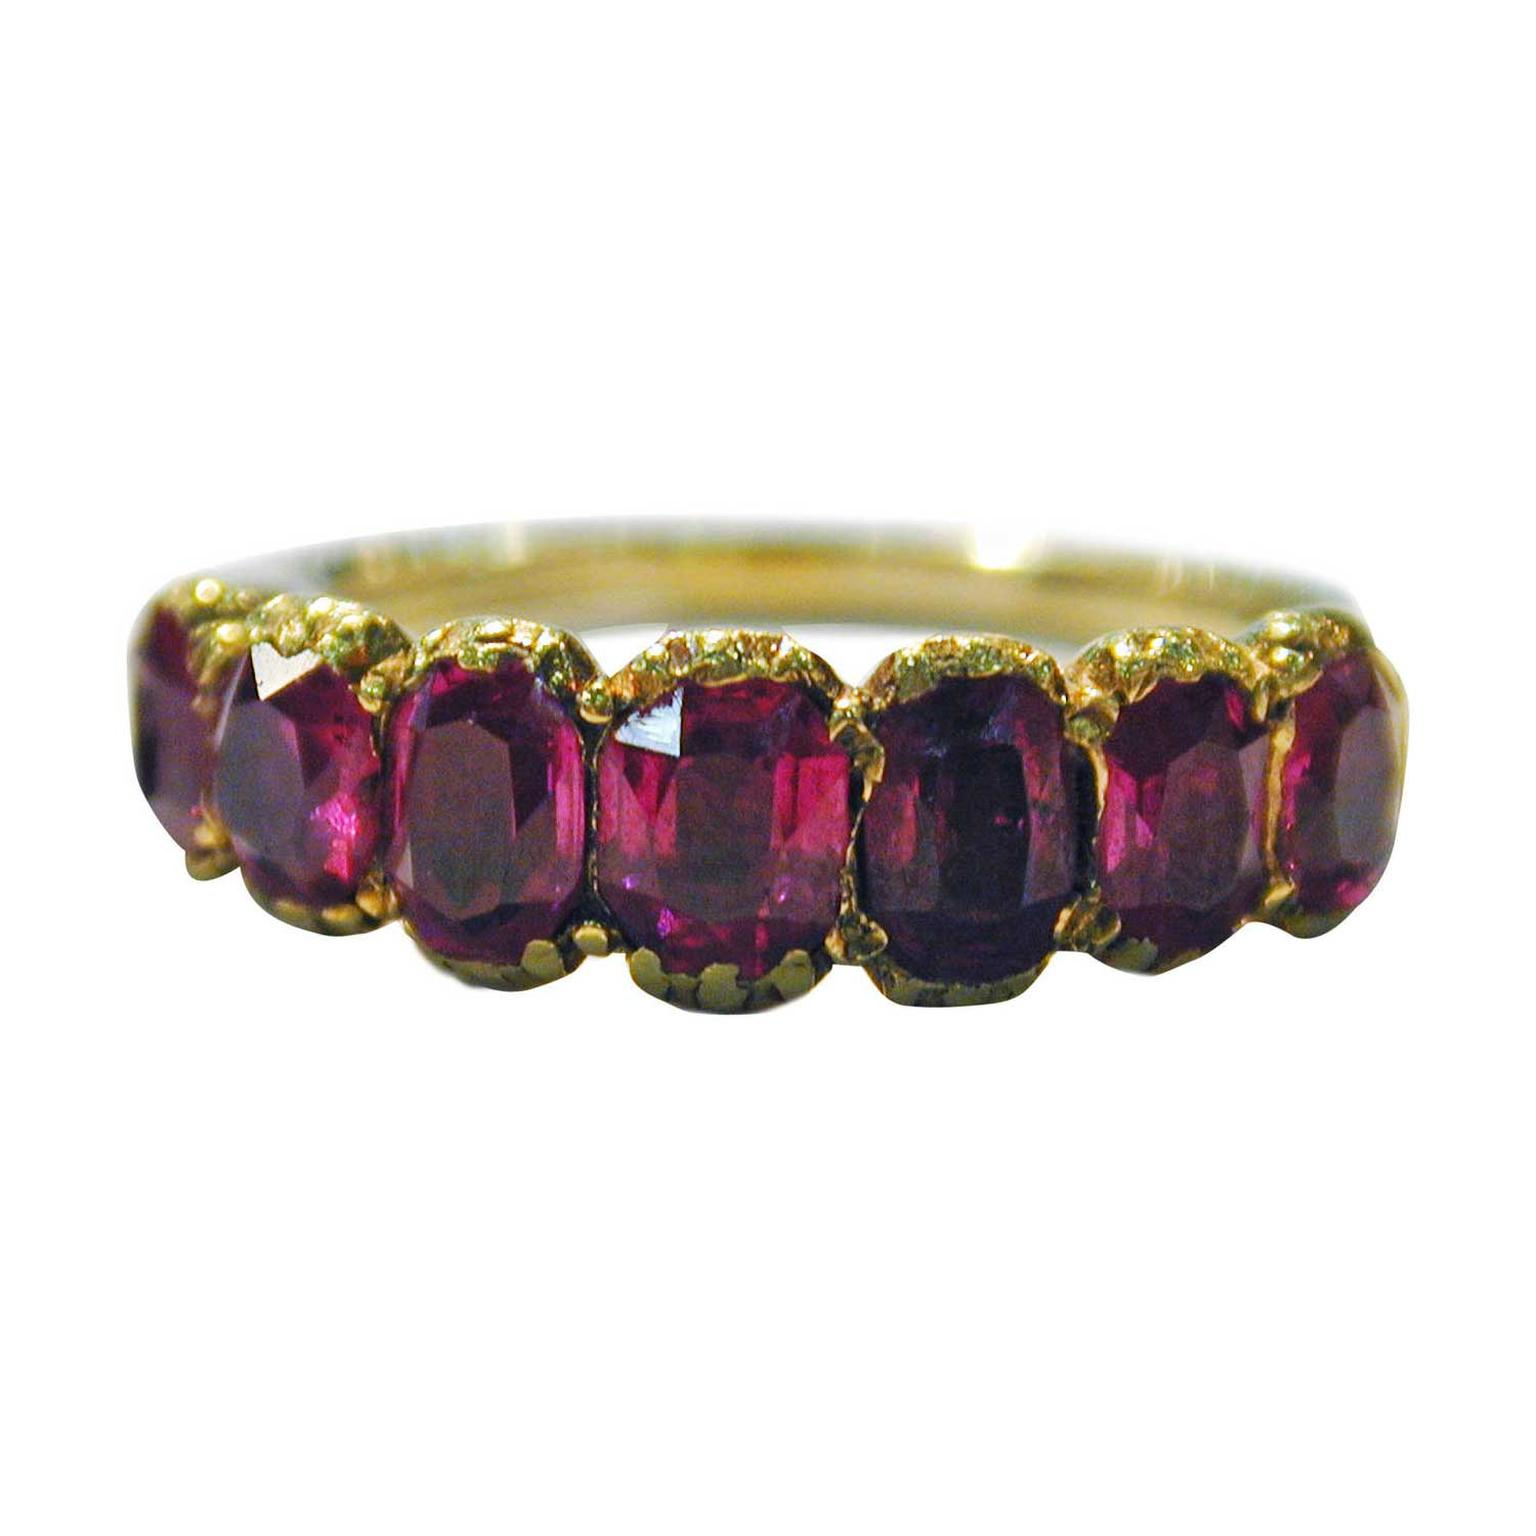 The Spare Room seven-stone Georgian Burmese ruby ring